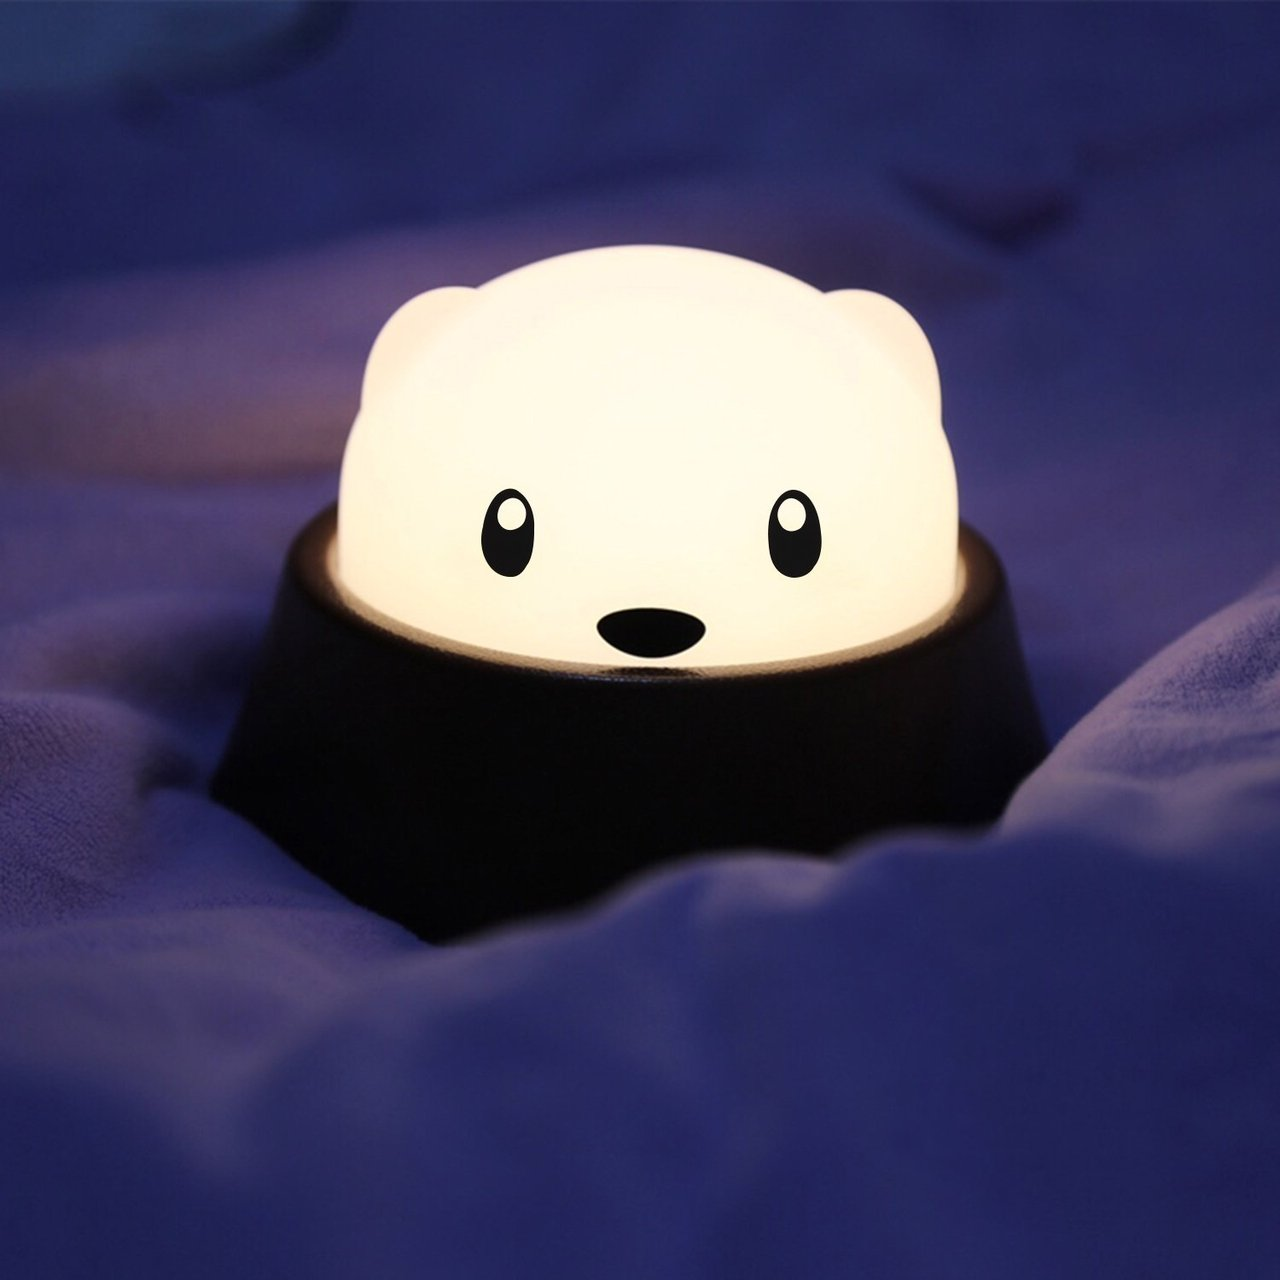 Whack a Diglett Game LED Night Lamp